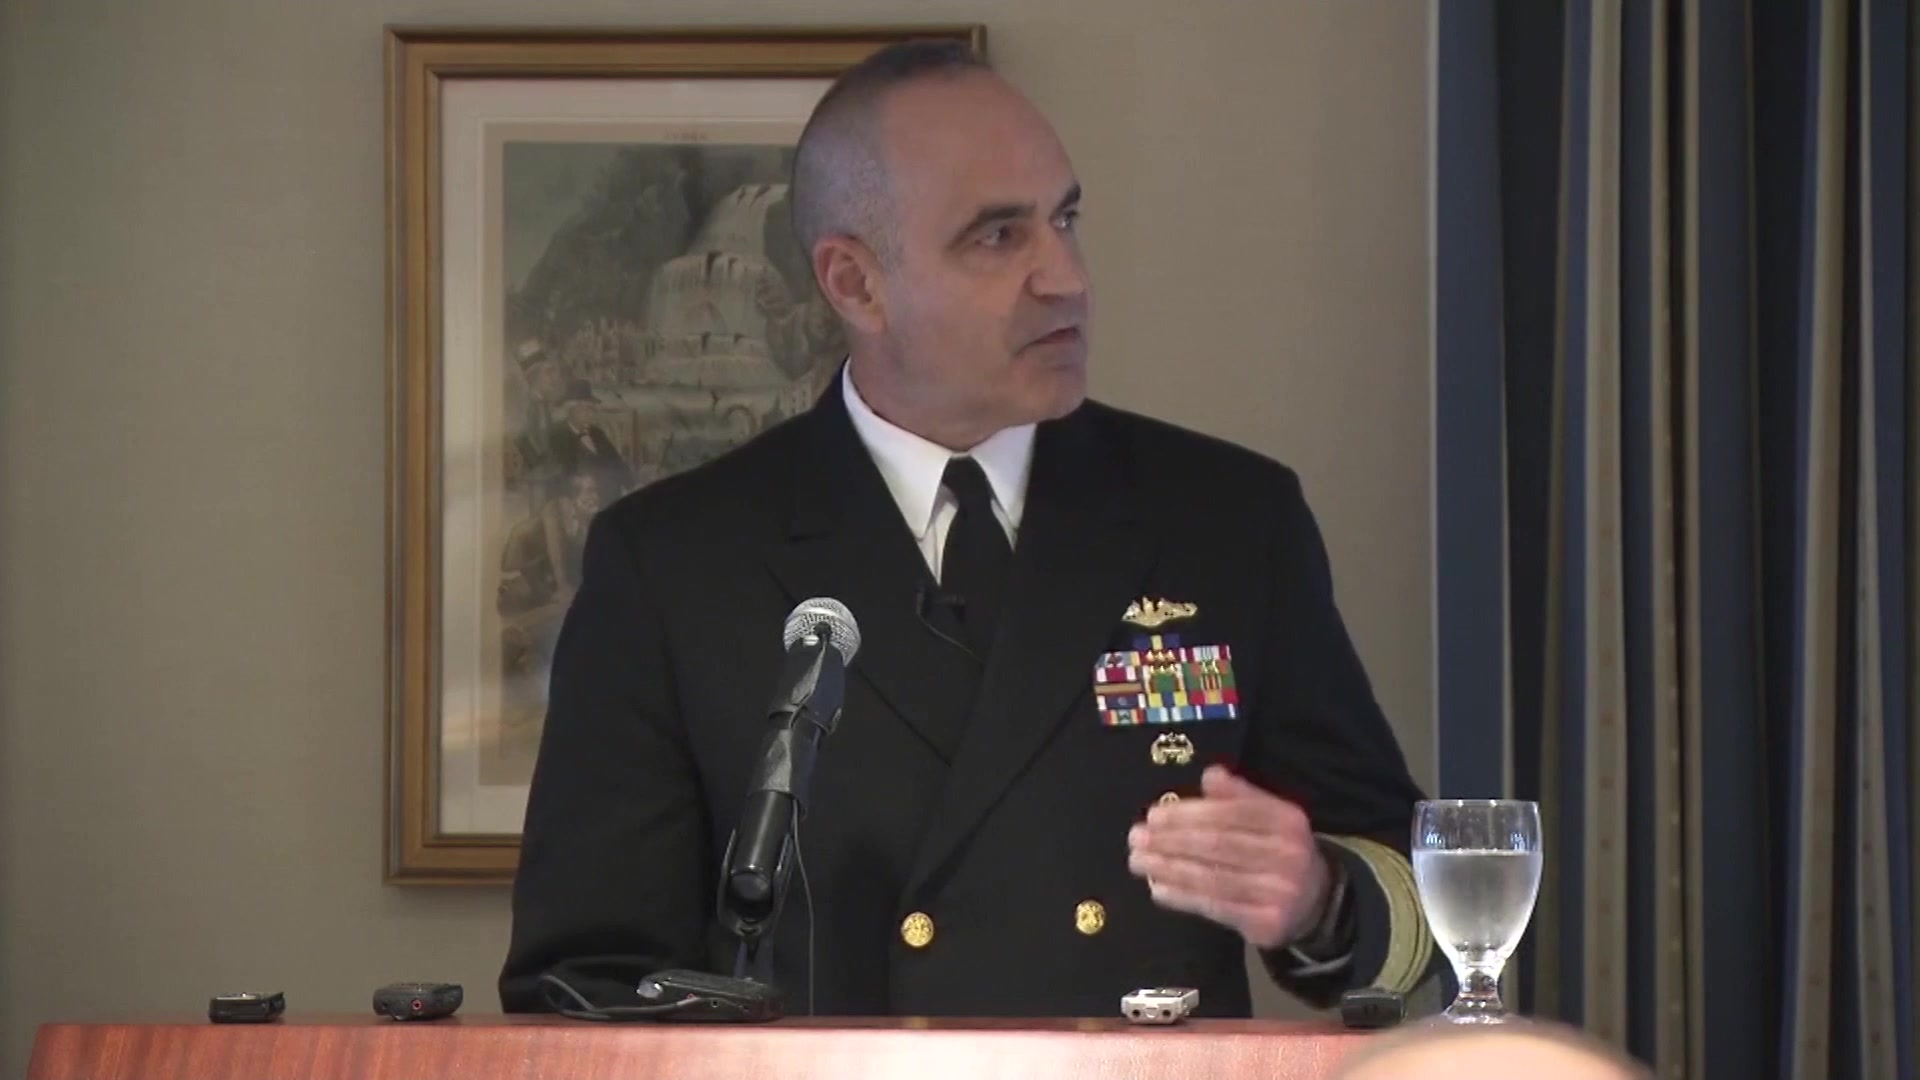 The deputy commander of U.S. Strategic Command delivers remarks from a lectern at a conference.